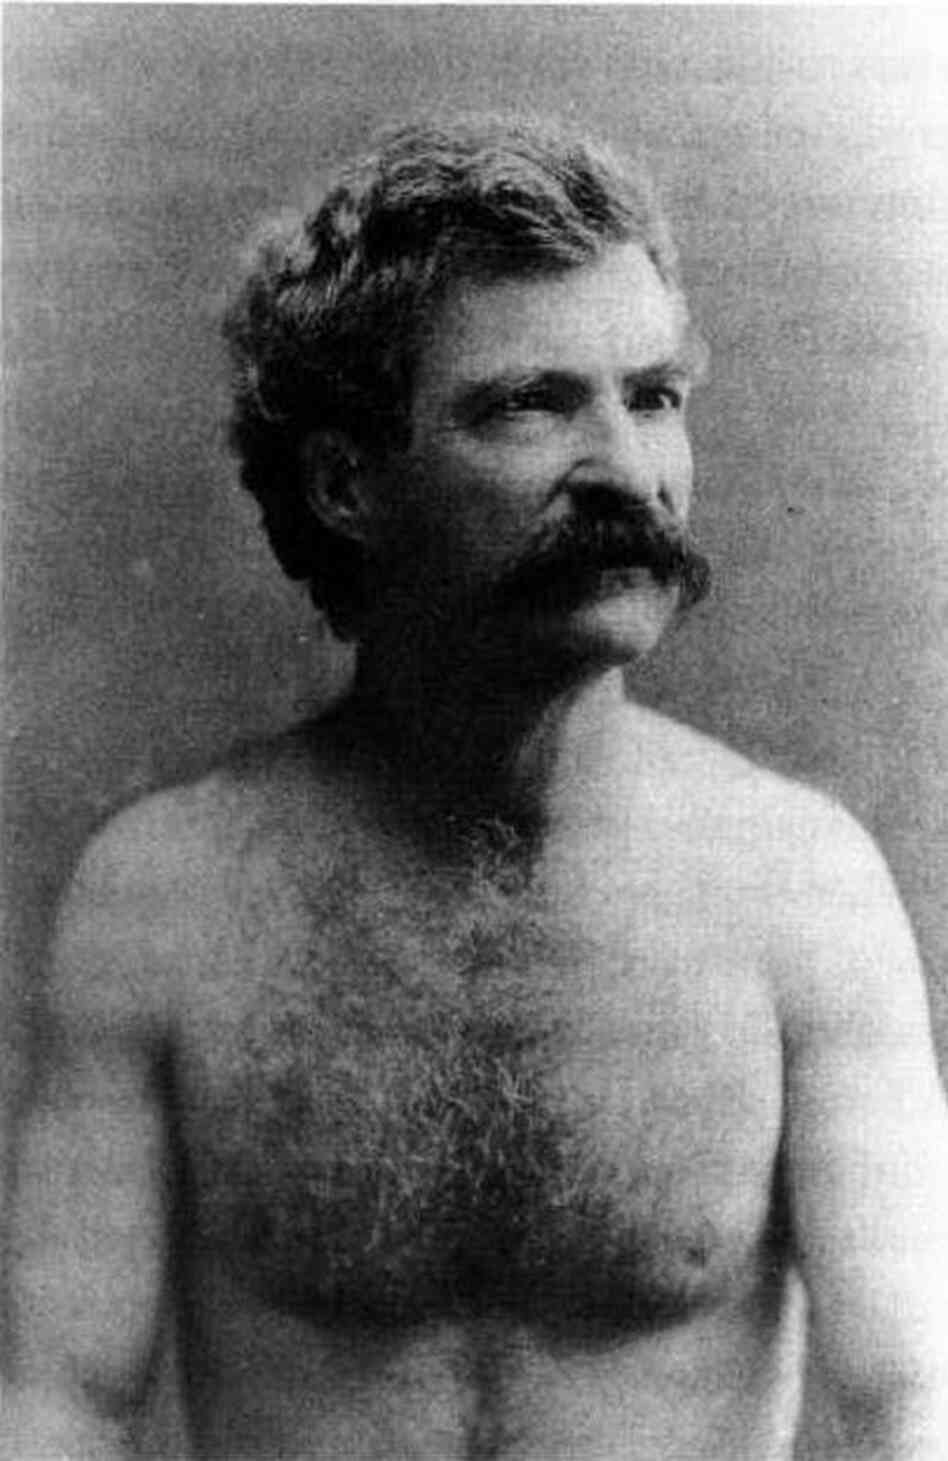 A photo of Mark Twain from the 1880s.